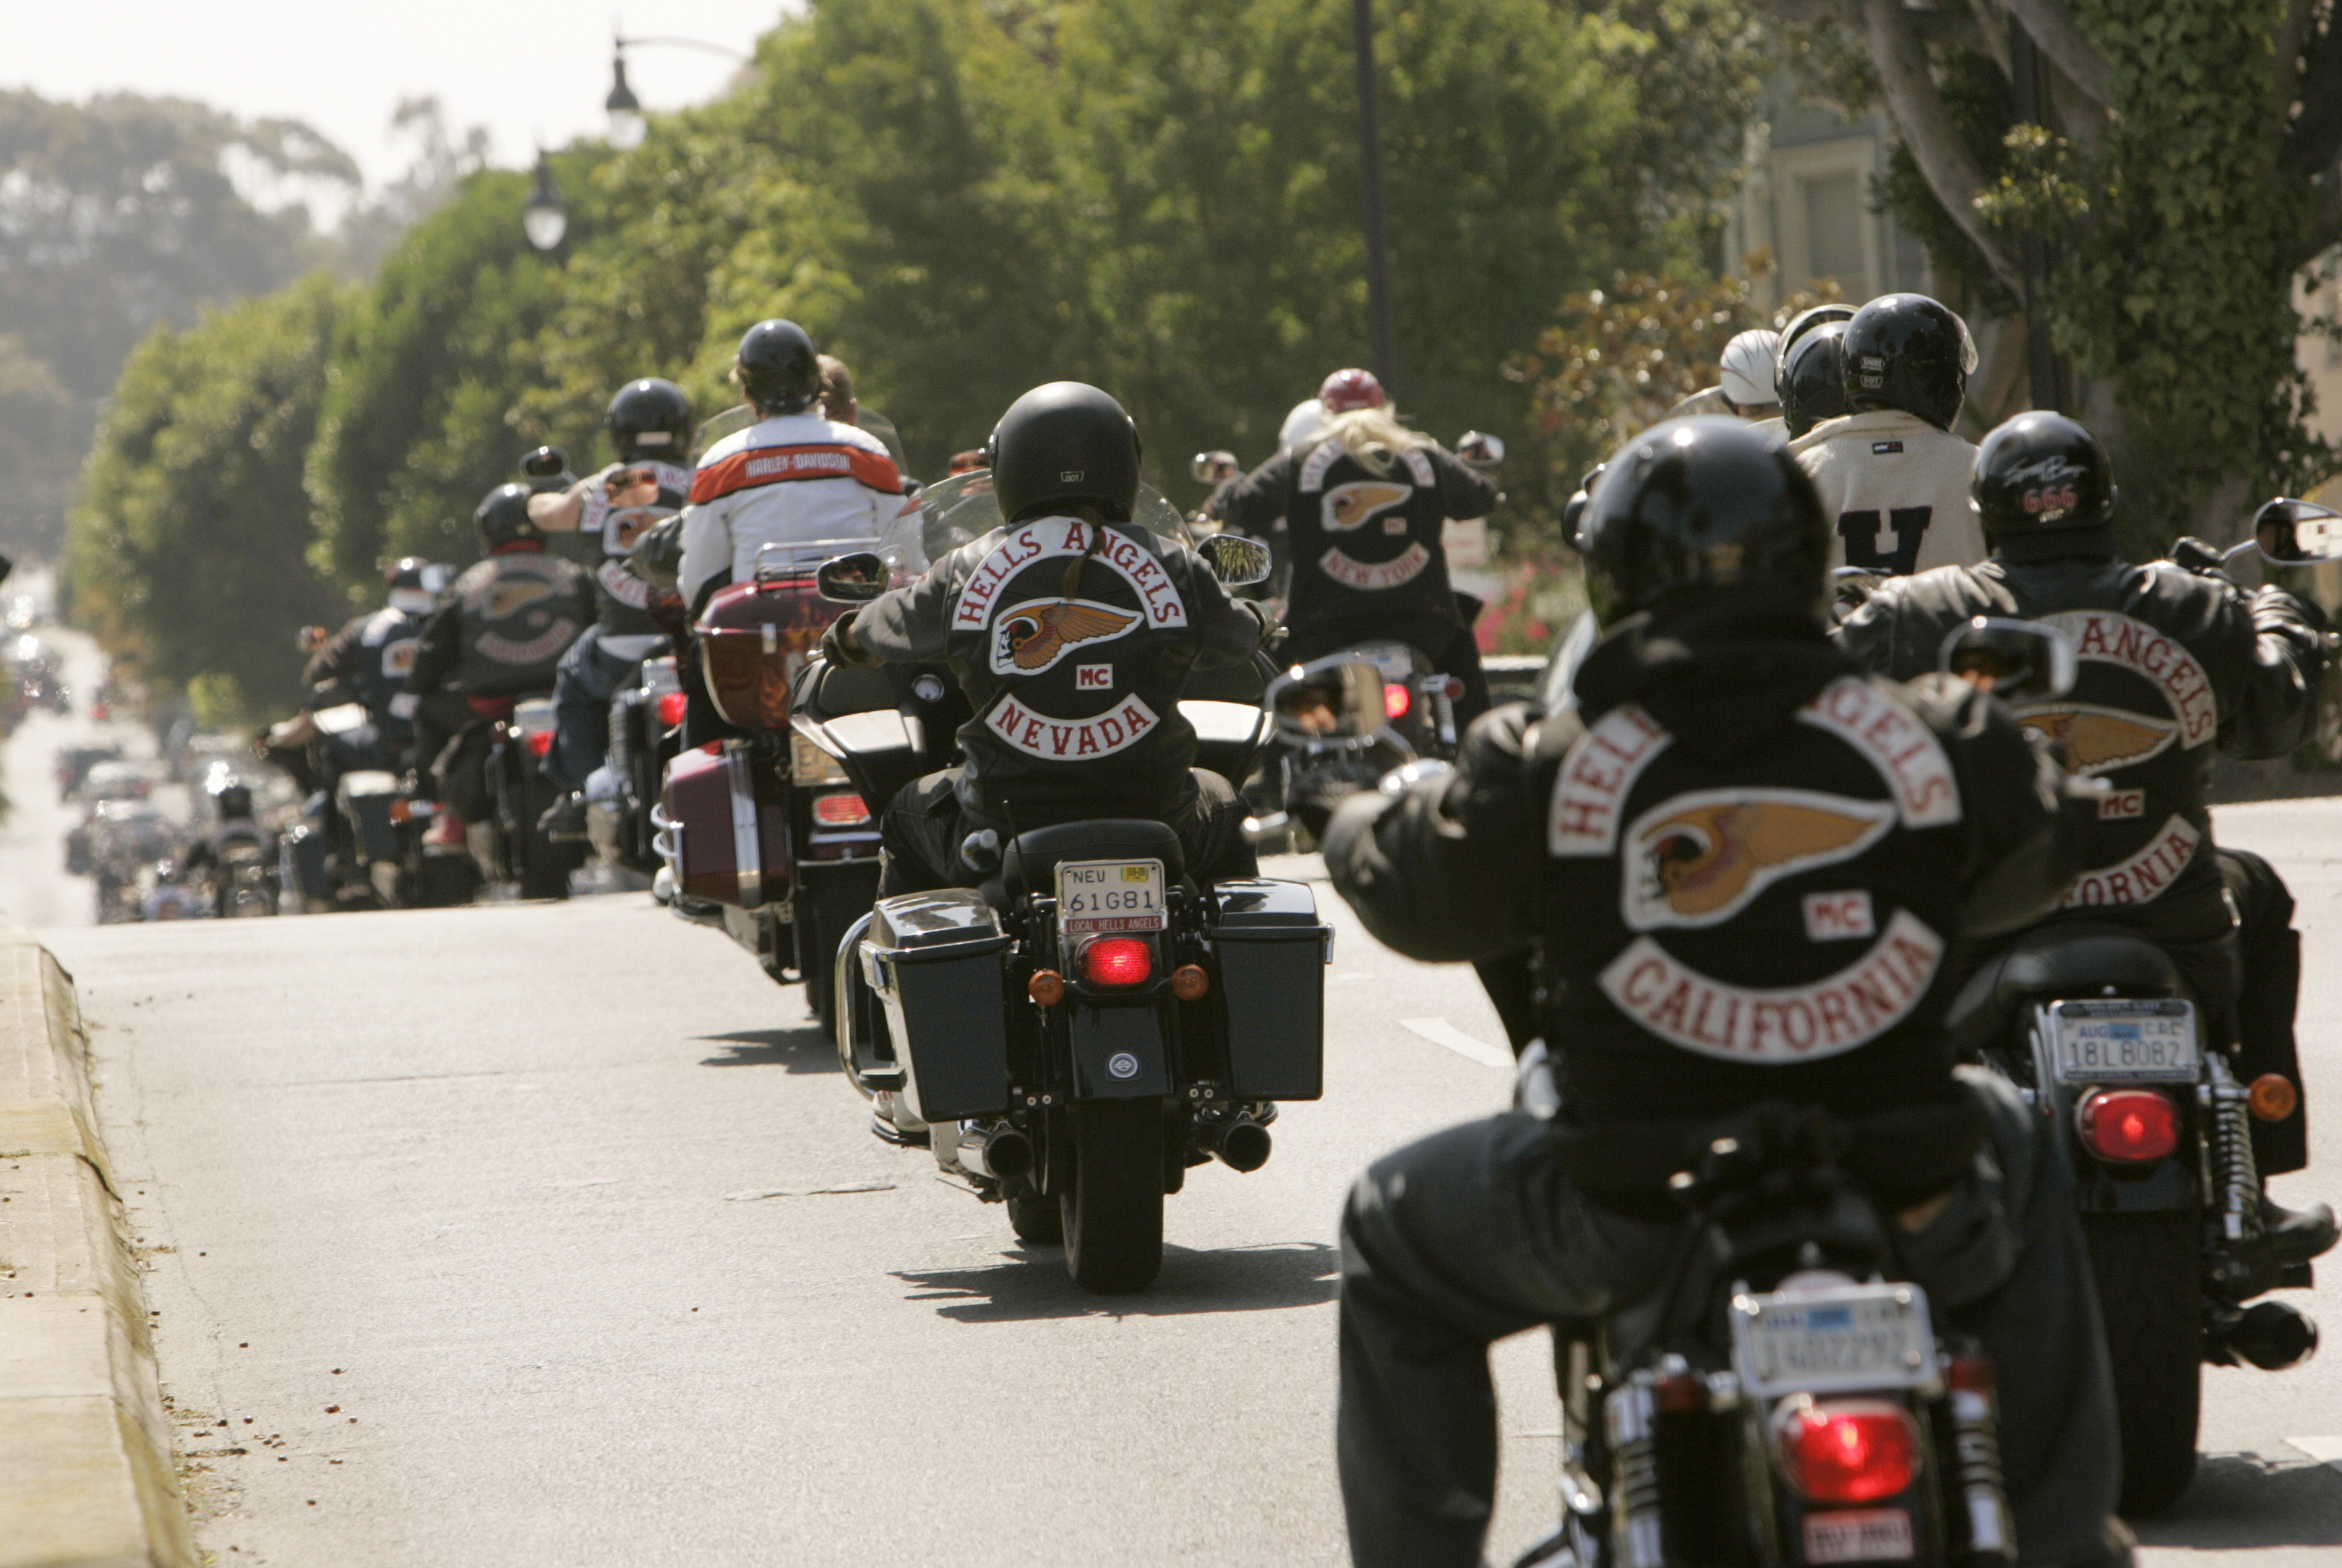 Mennonite Biker Gangs Clash with Hells Angels at Sturgis?